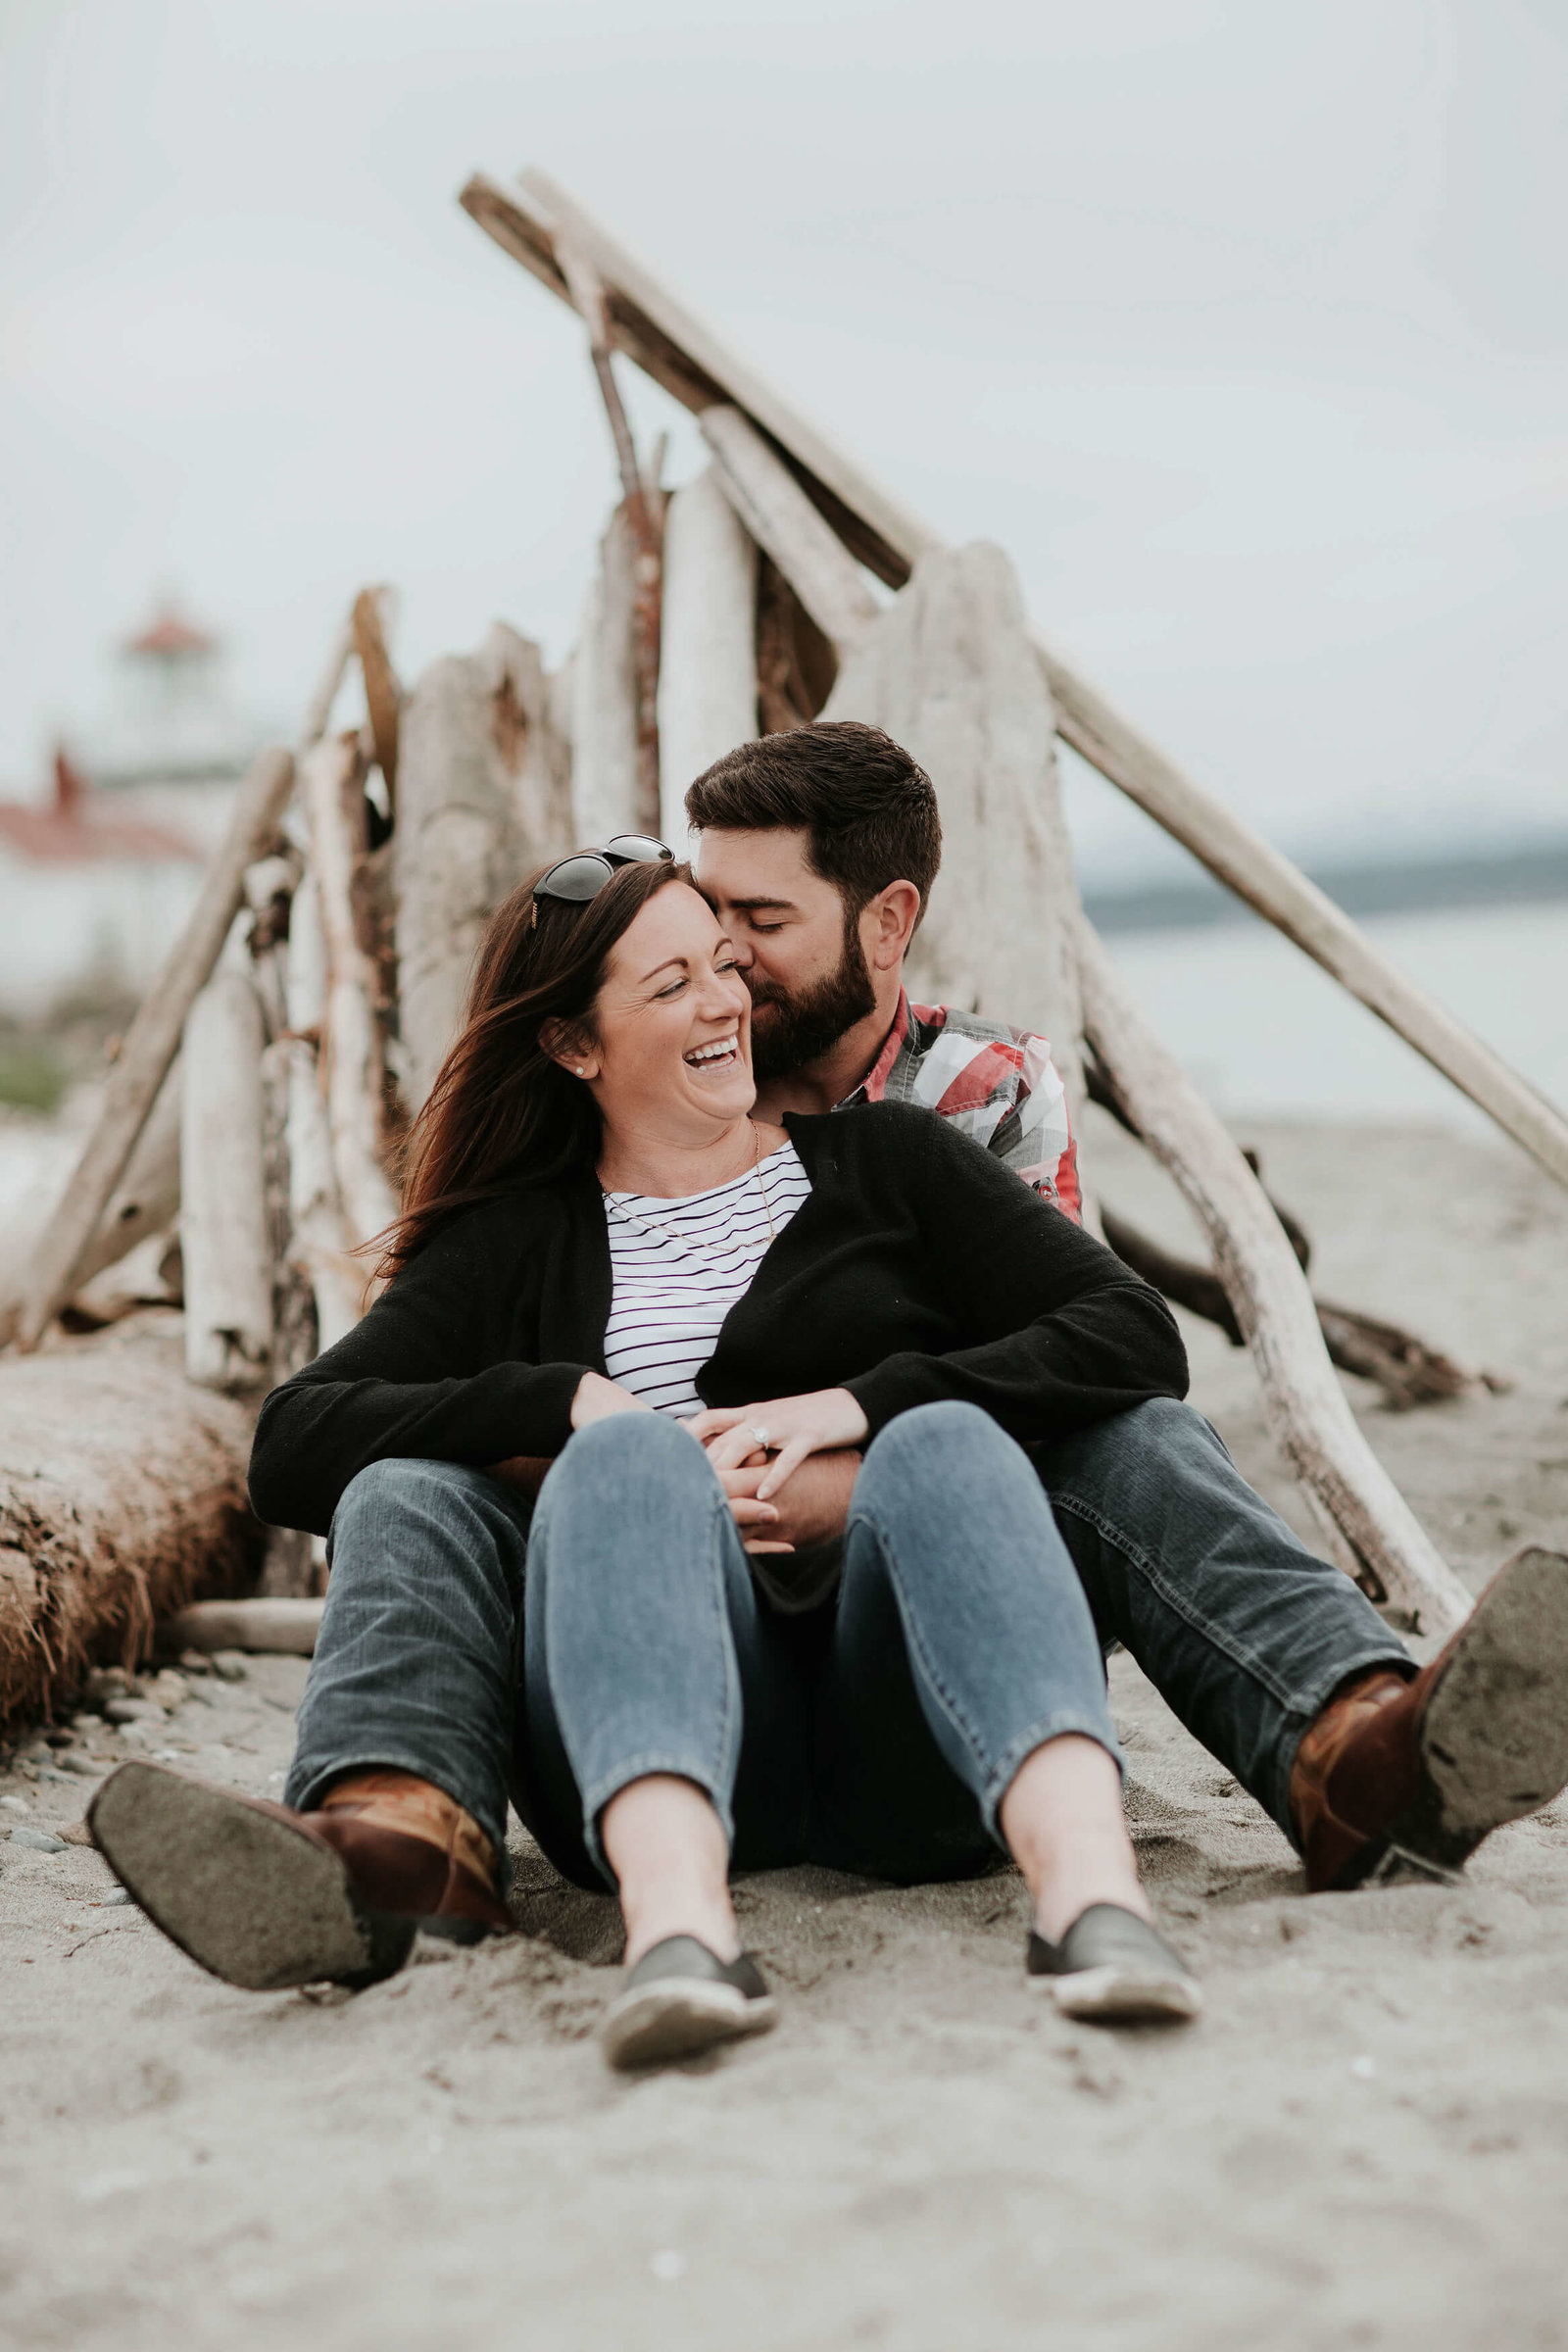 Discovery-Park-Engagement-Chelsey+Troy-by-Adina-Preston-Photography-2019-100